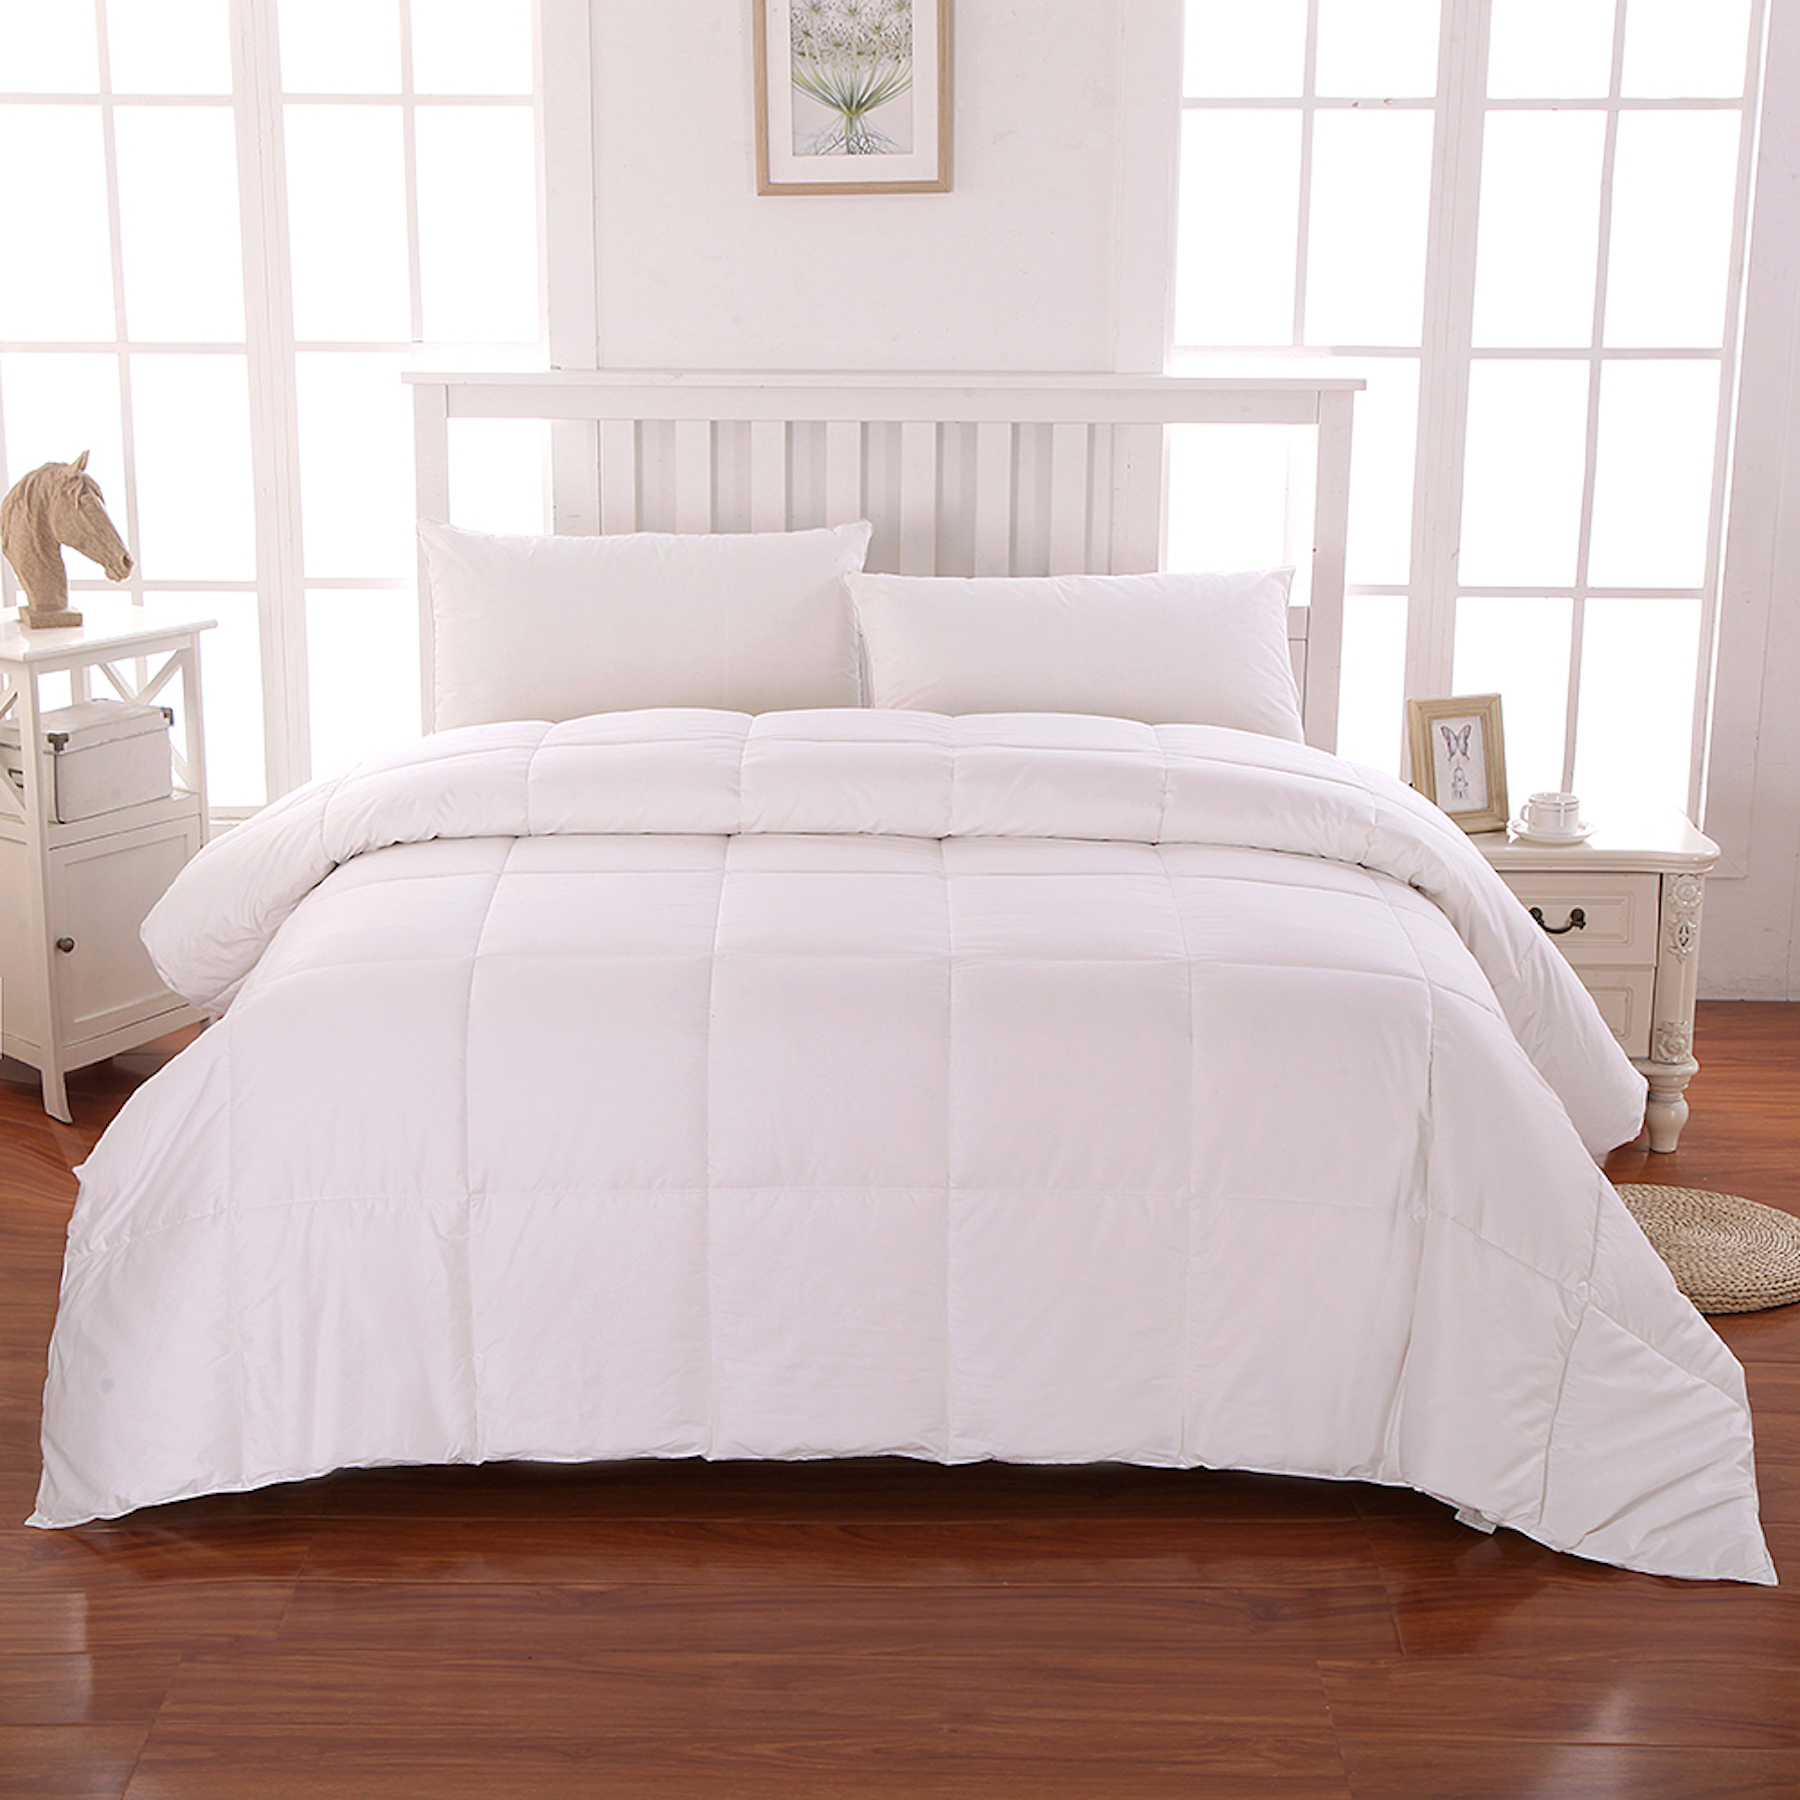 Cottonloft Soft and Medium Warmth All Natural Breathable Hypoallergenic Cotton Comforter